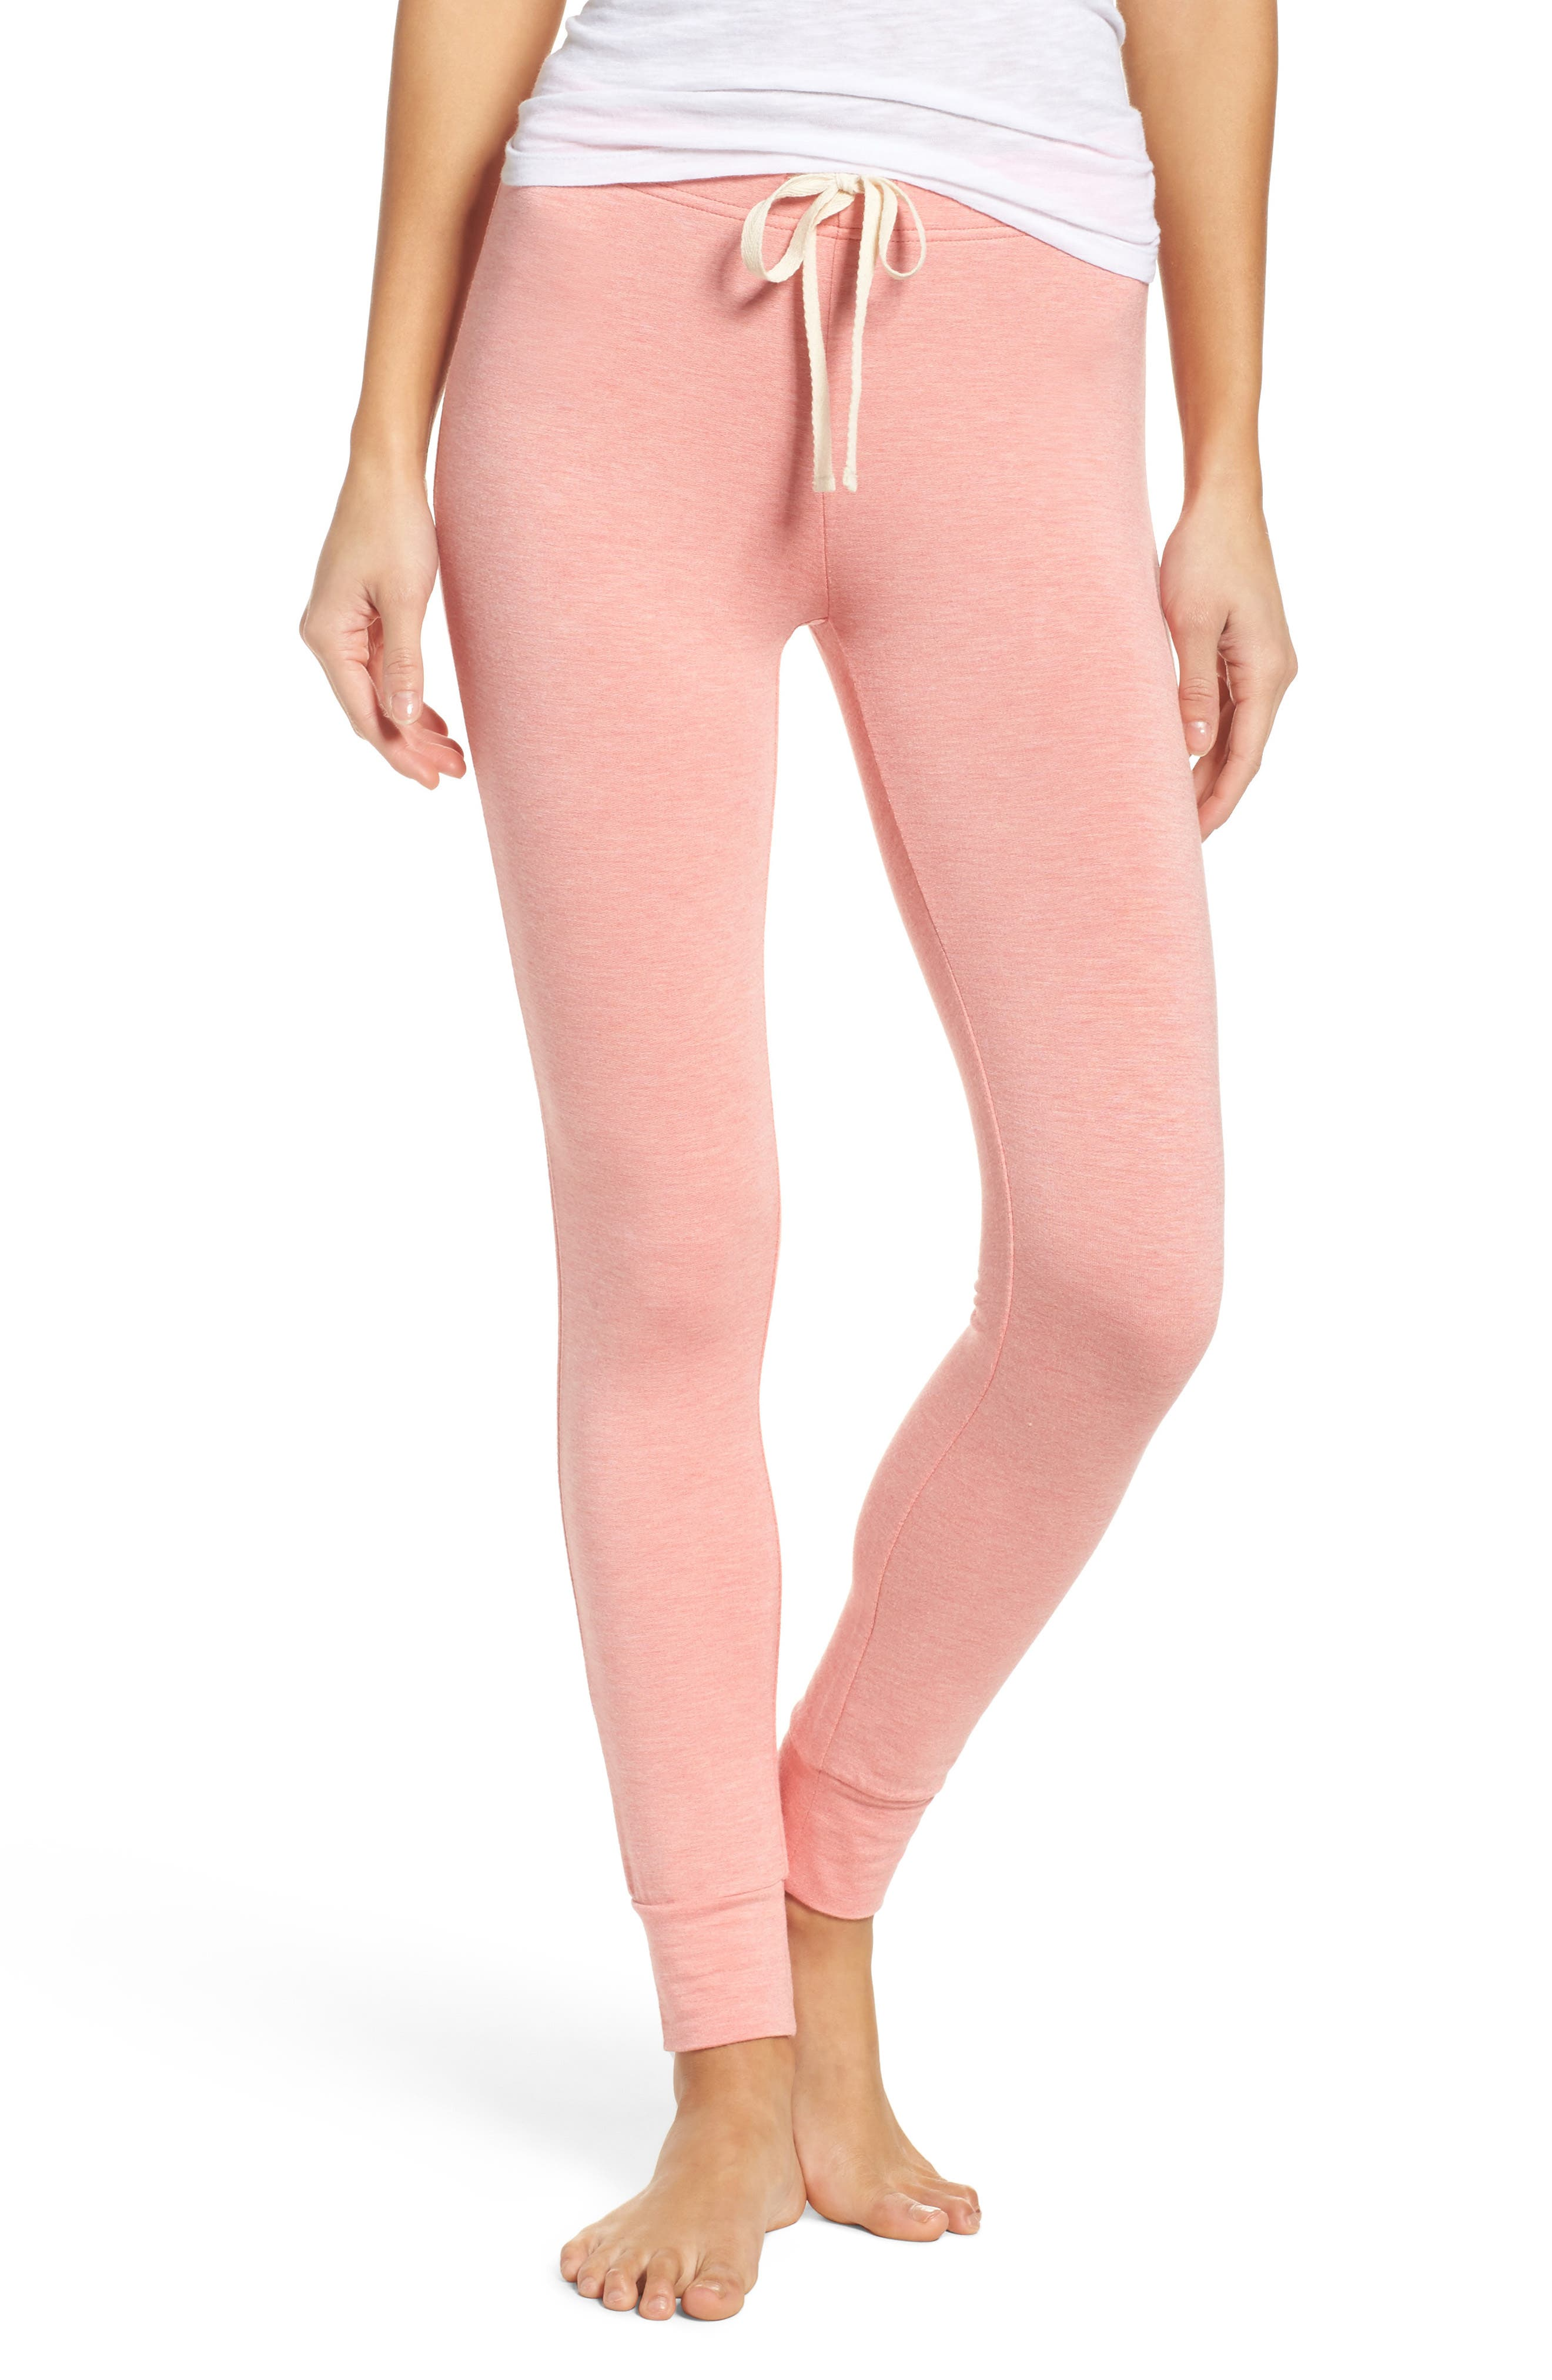 Honeydew Intimates French Terry Lounge Pants (2 for $60)